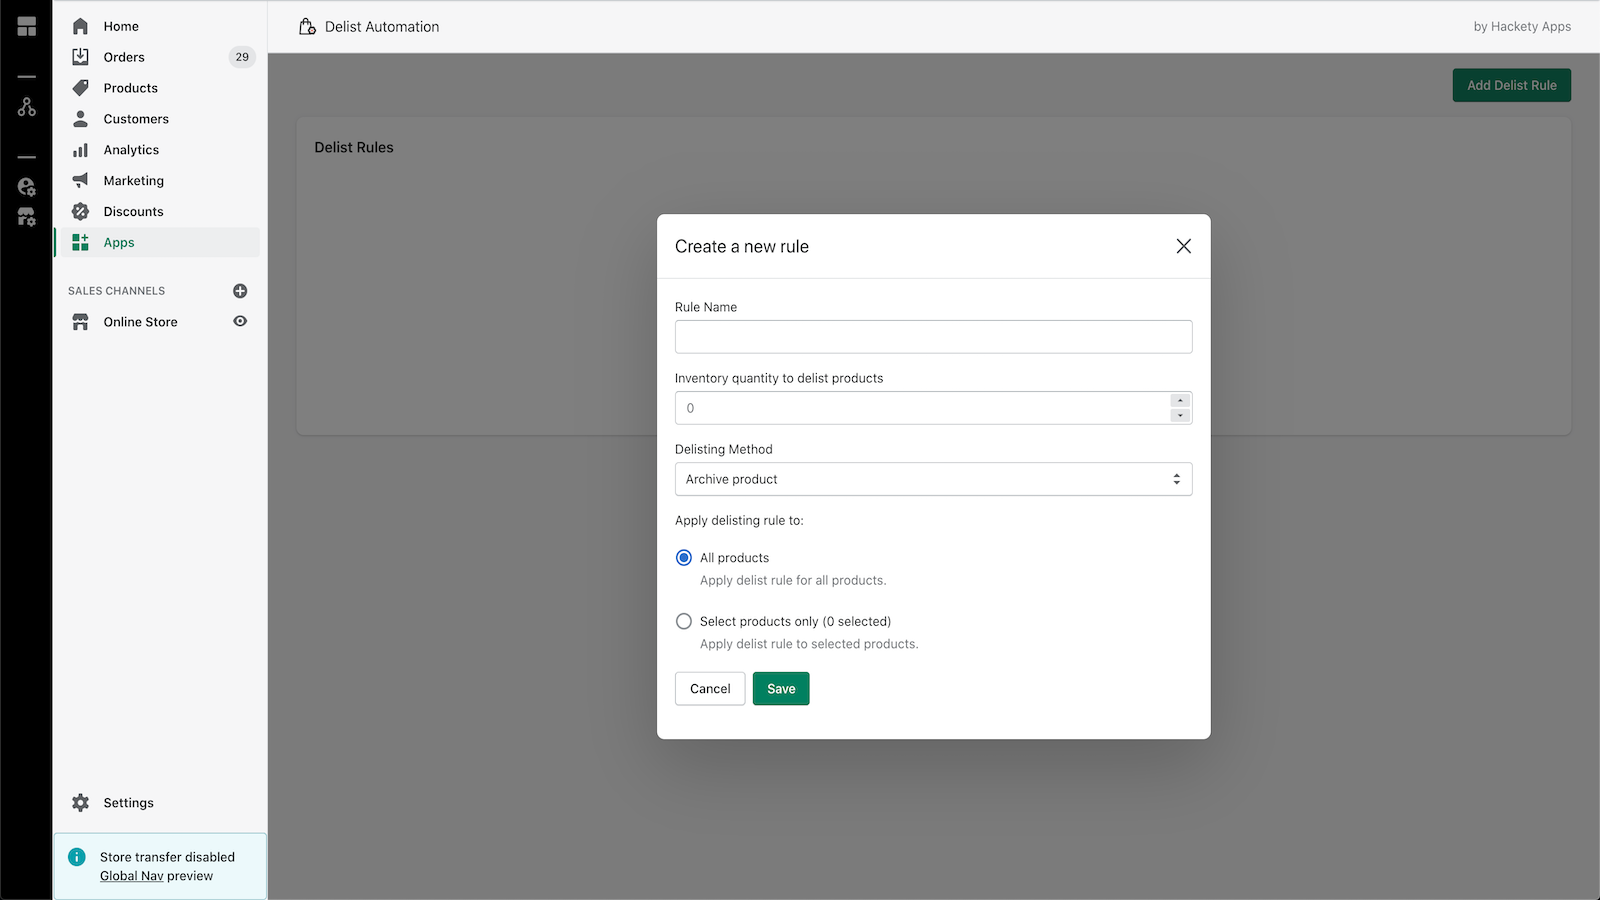 Add a new Delist Automation rule